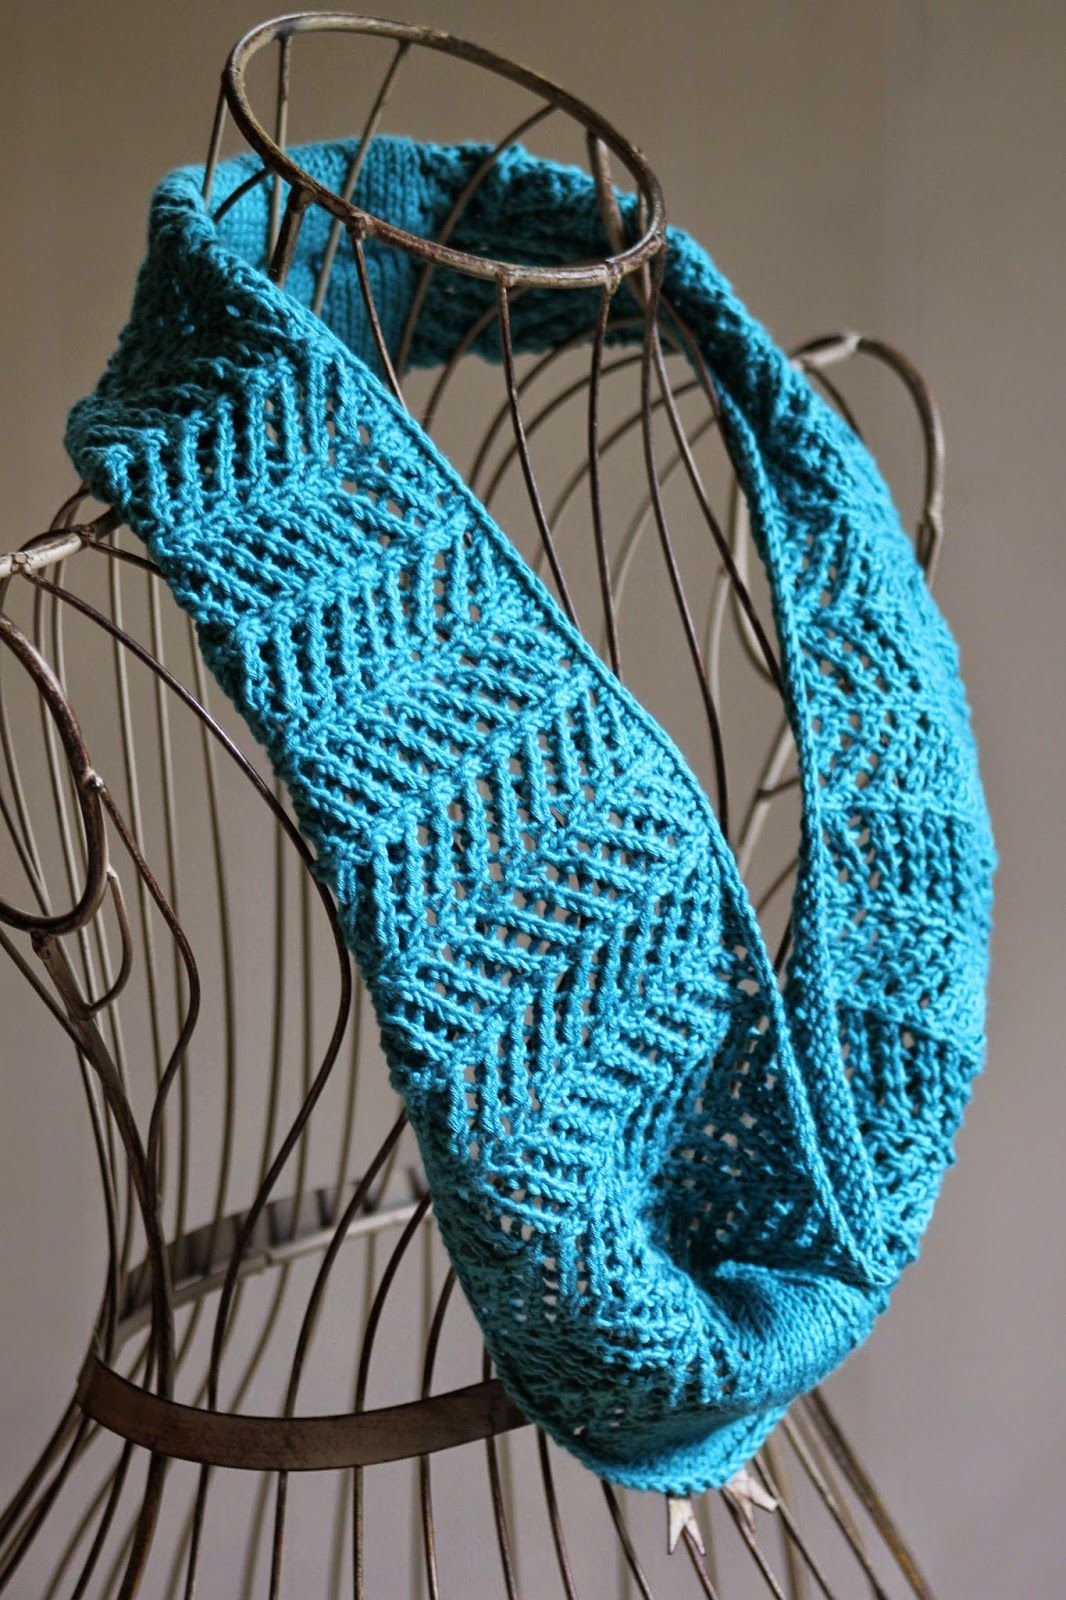 Arrowhead Lace Cowl II | Knitting, Knitting accessories ...